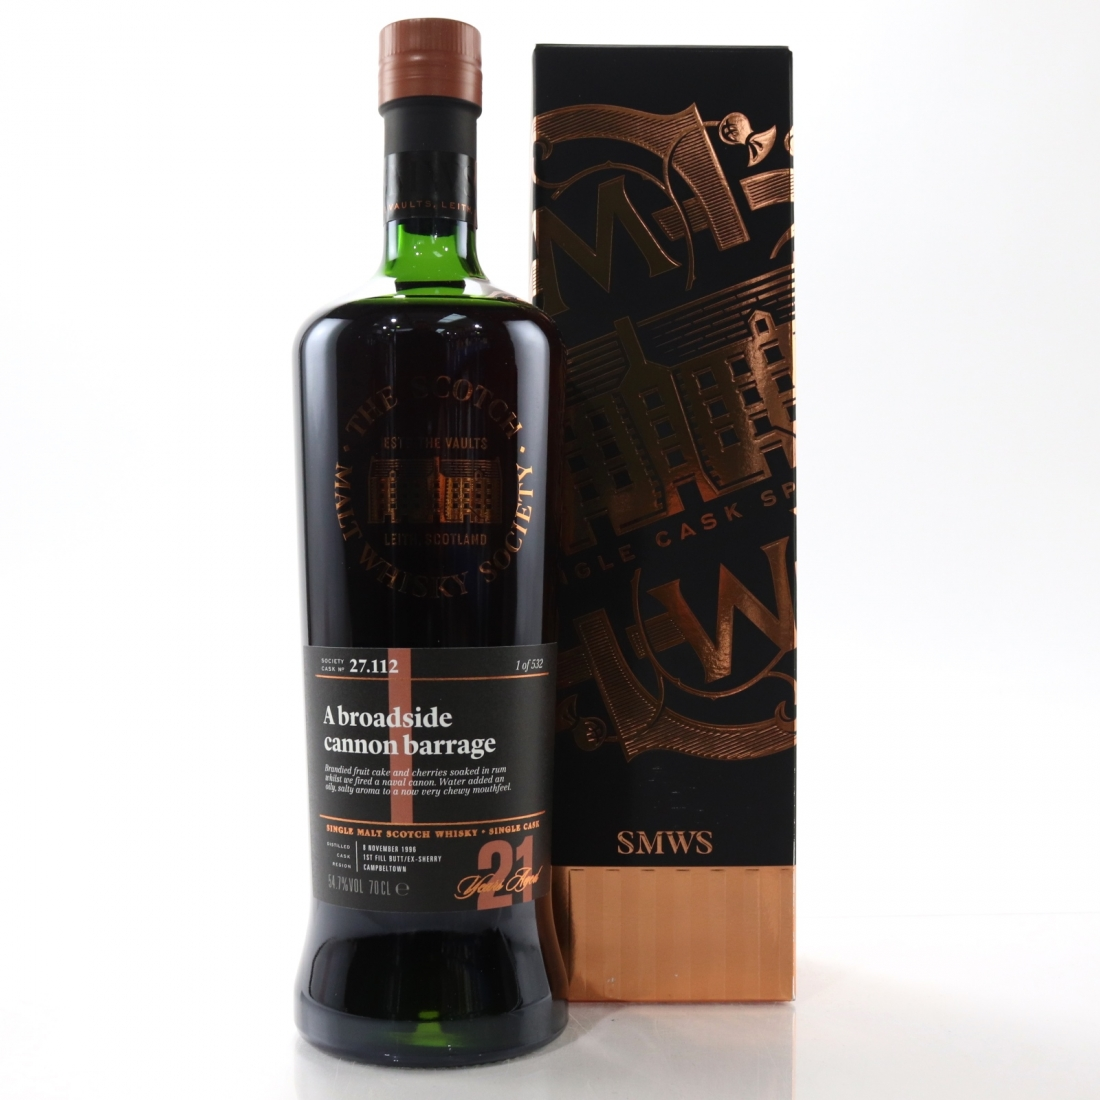 Springbank 1996 SMWS 21 Year Old 27.112